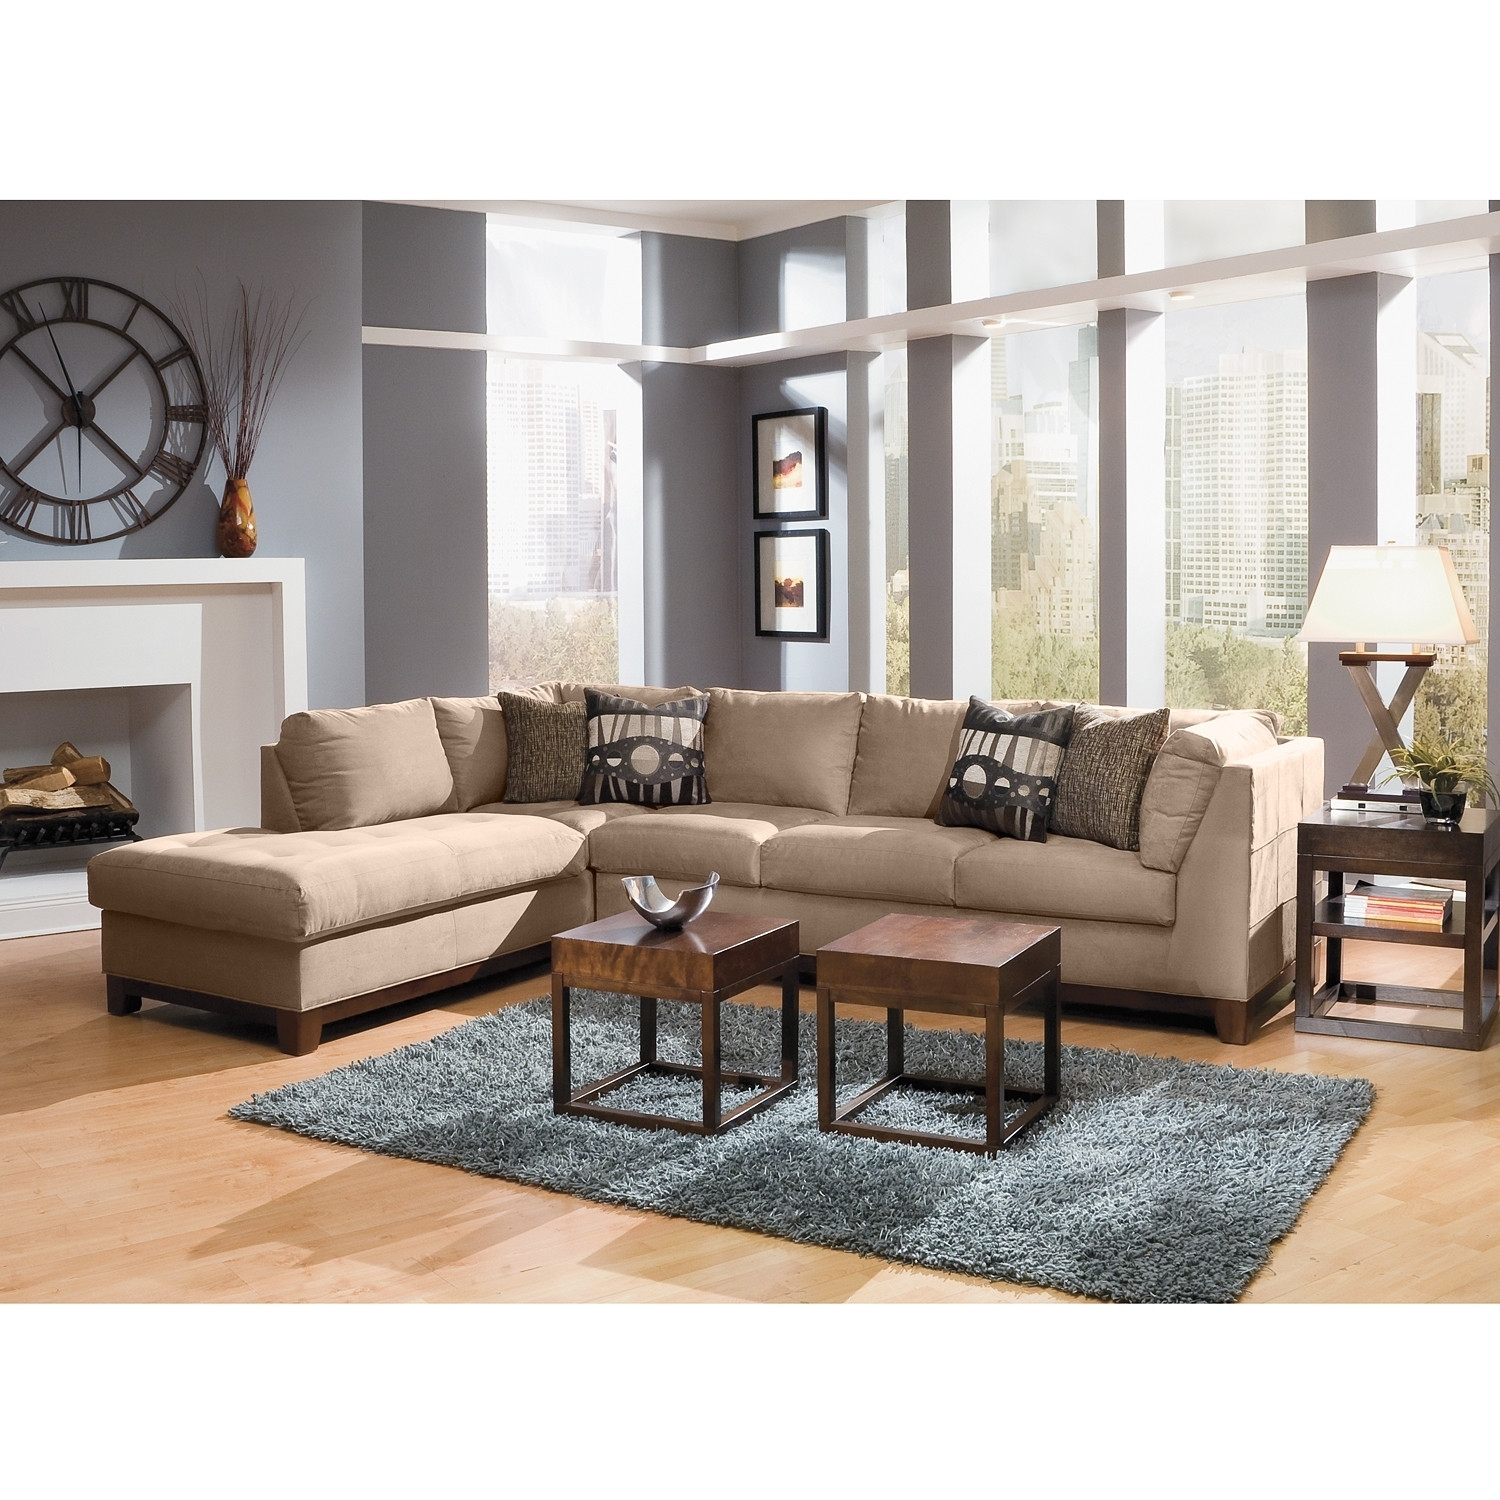 10+ Choices Of Sectional Sofas In Greensboro Nc